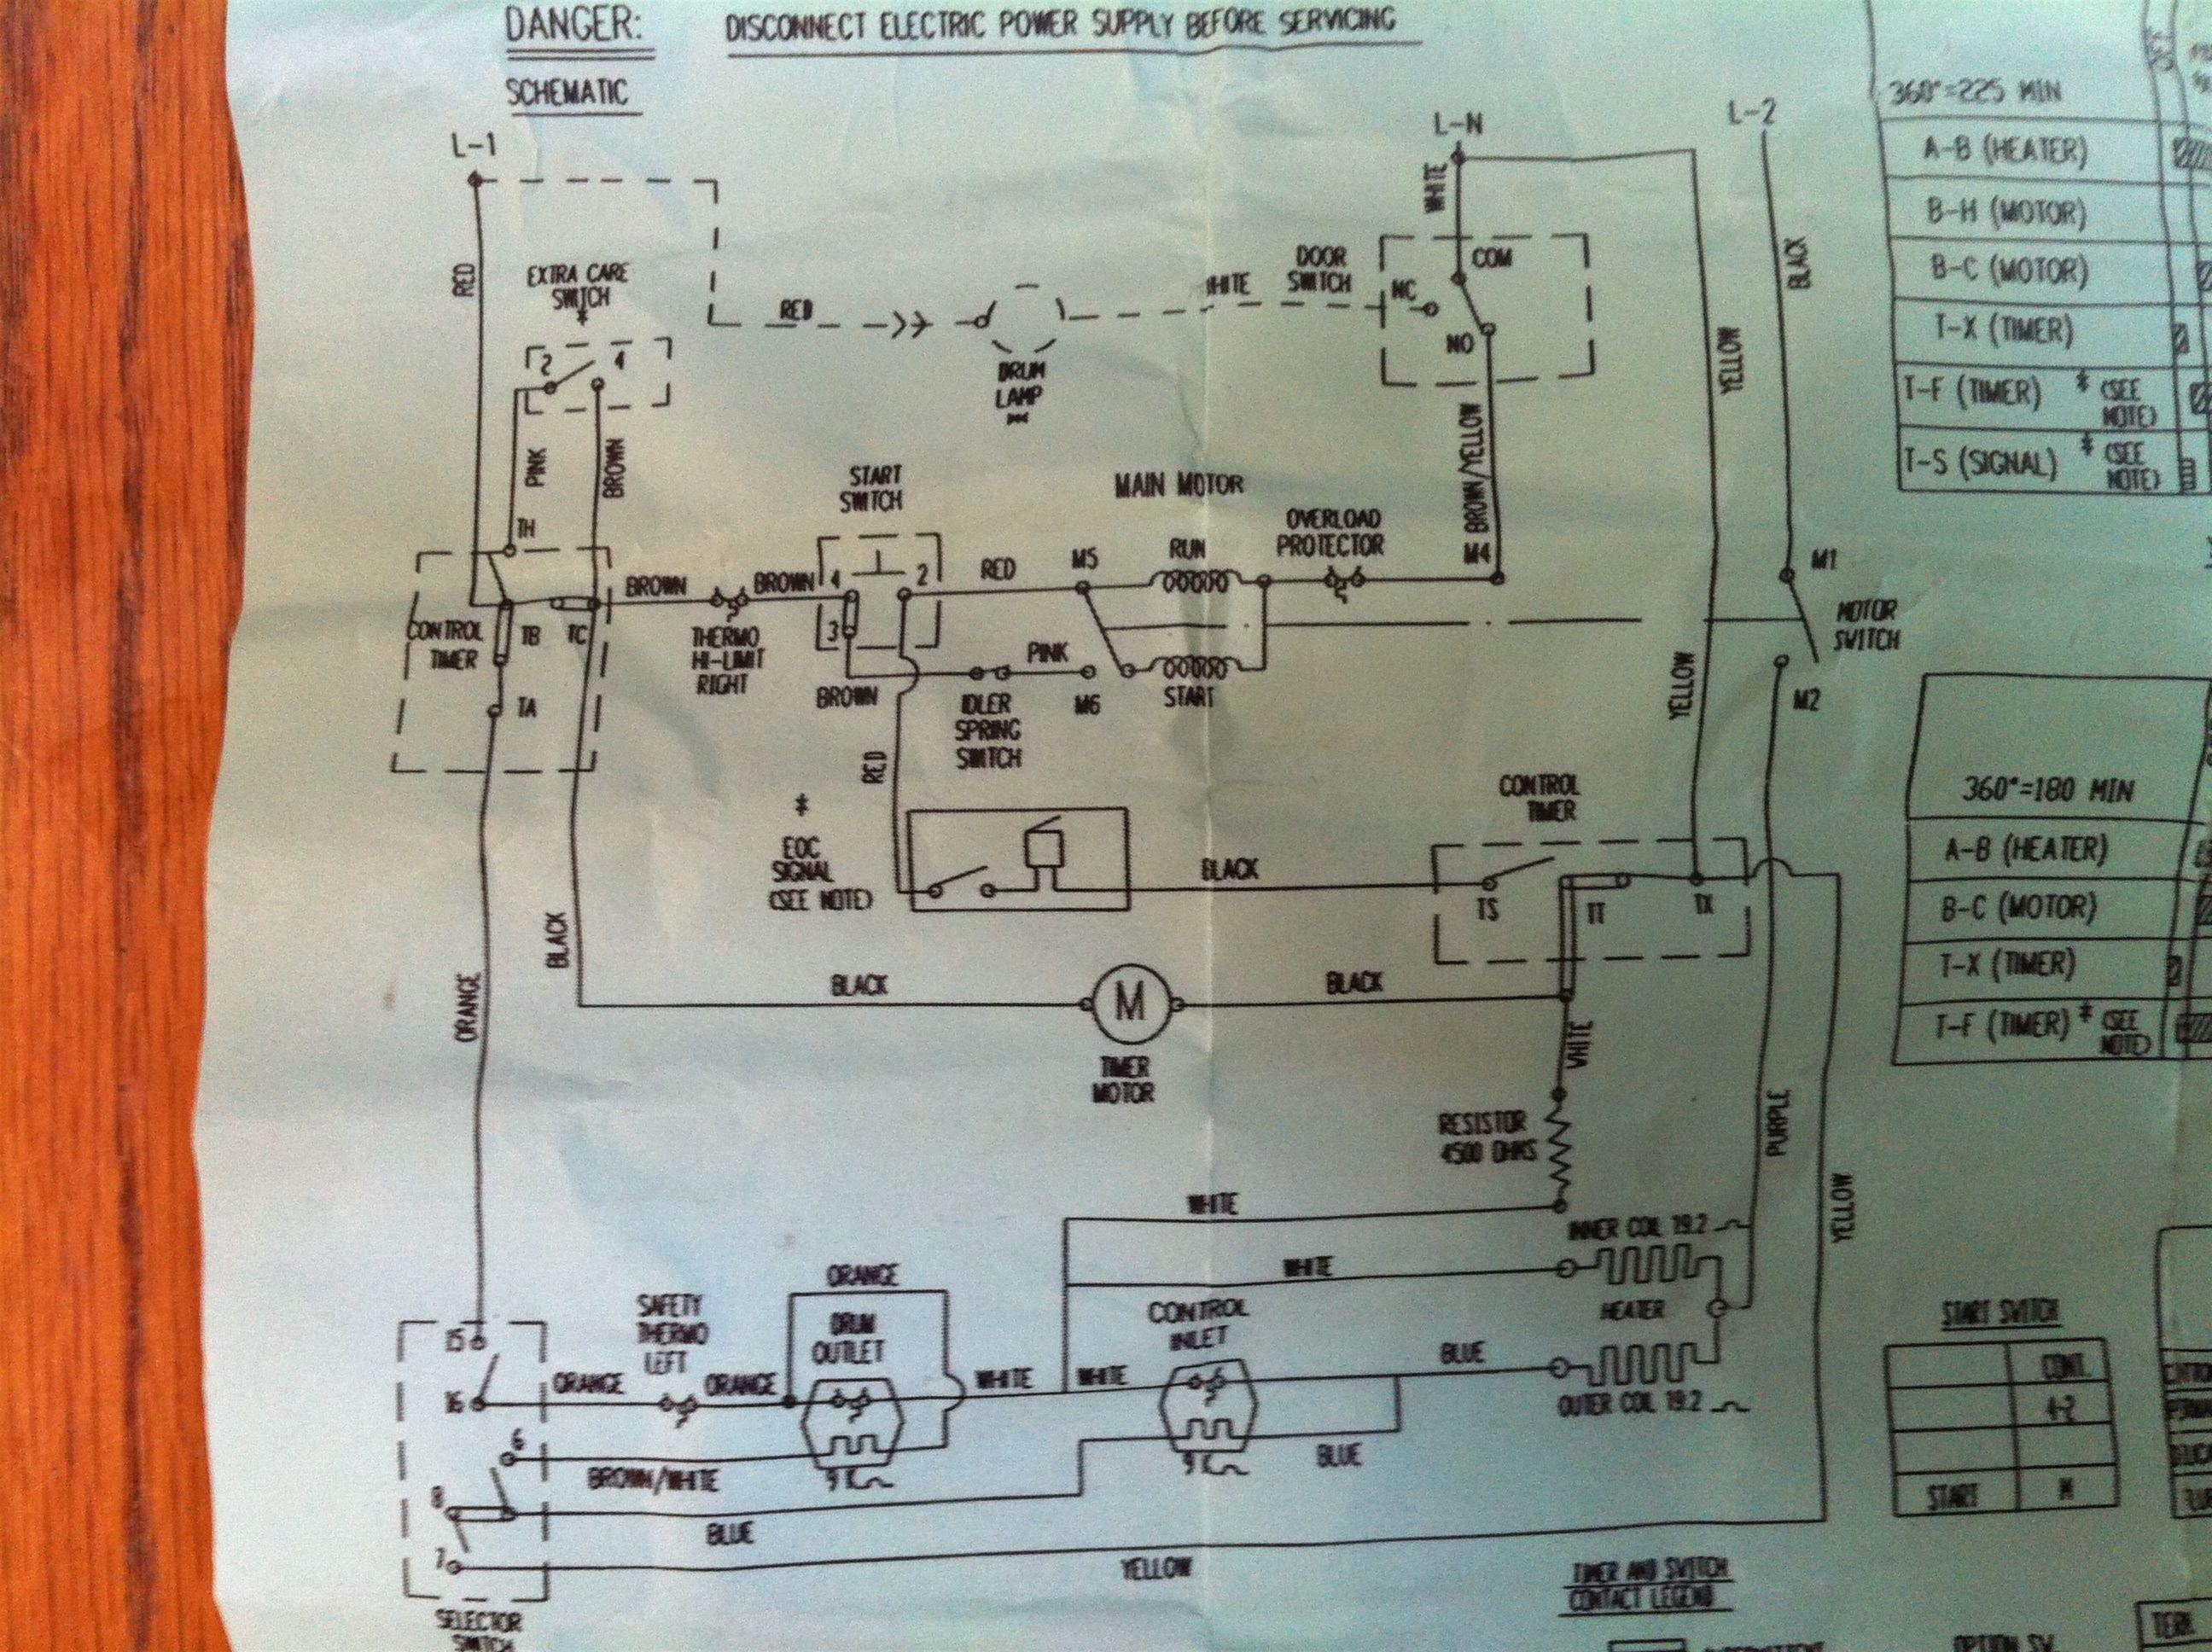 ge dryer timer wiring diagram Collection-Ge Dryer Start Switch Wiring Diagram Fresh Ge Dryer Wiring Diagram 12-n